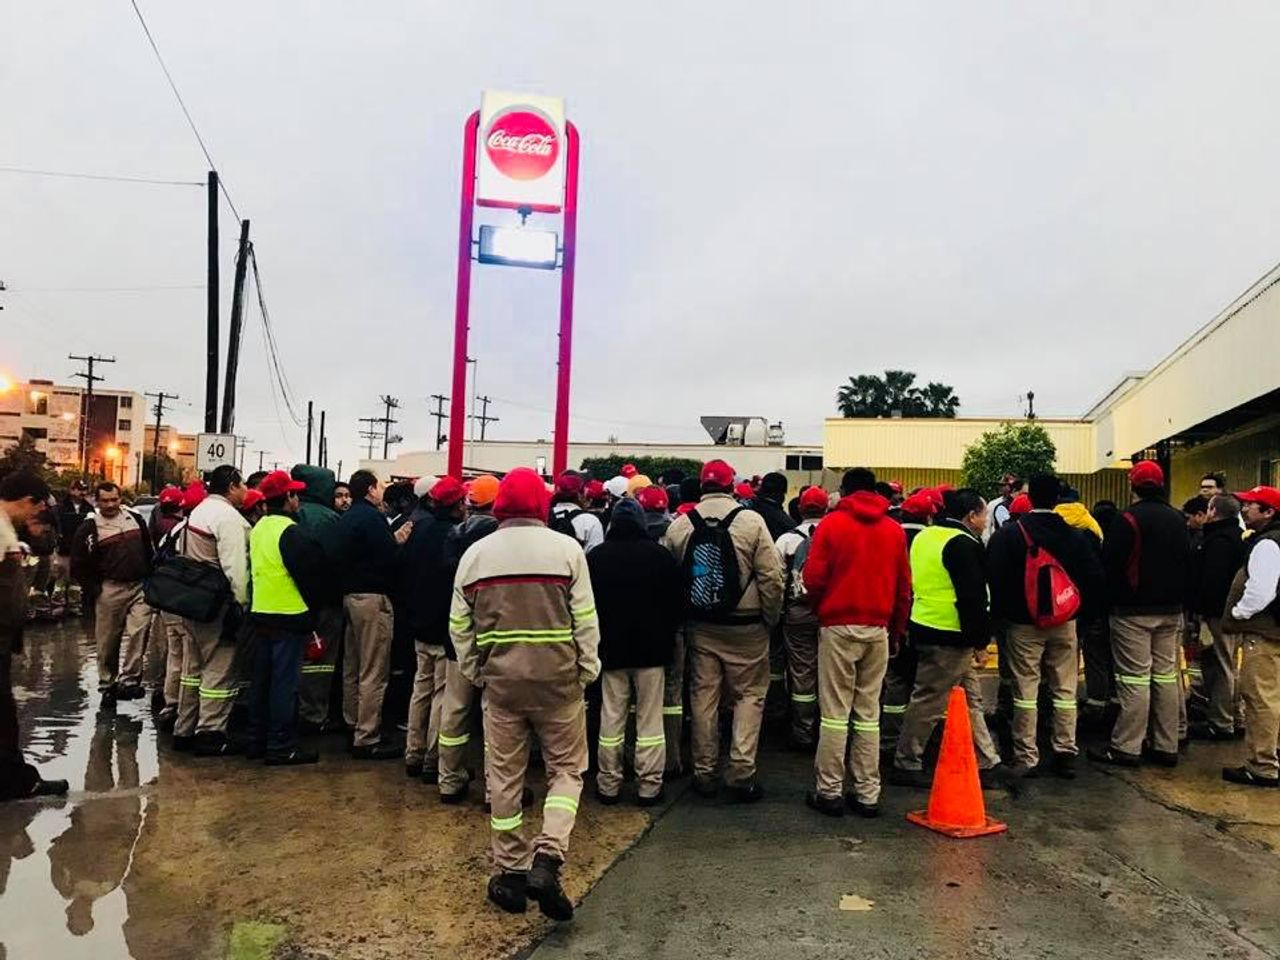 Matamoros Coca-Cola workers on strike